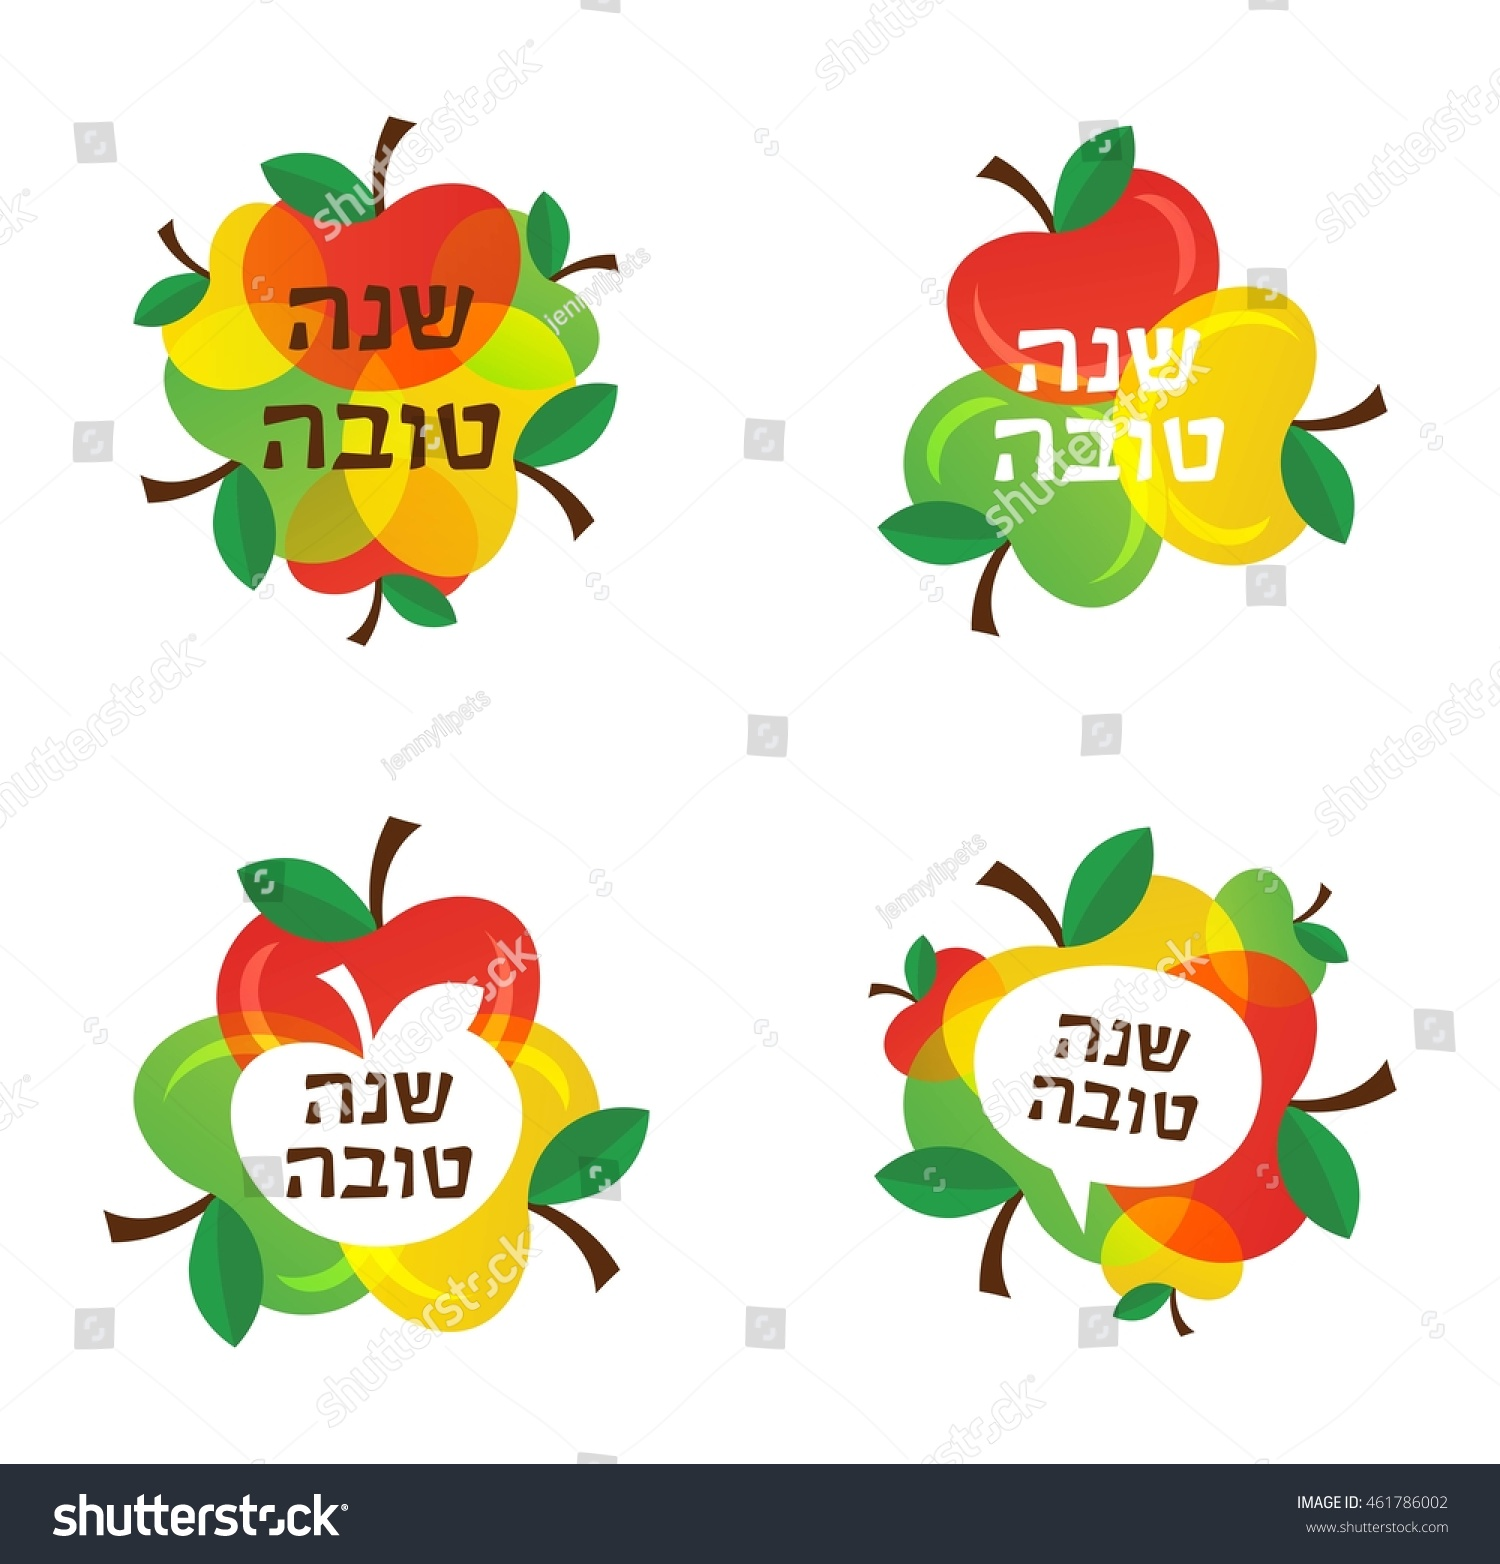 Greeting card rosh hashanah greeting happy stock vector 461786002 greeting card for rosh hashanah with greeting of happy new year in hebrew colorful apple kristyandbryce Image collections